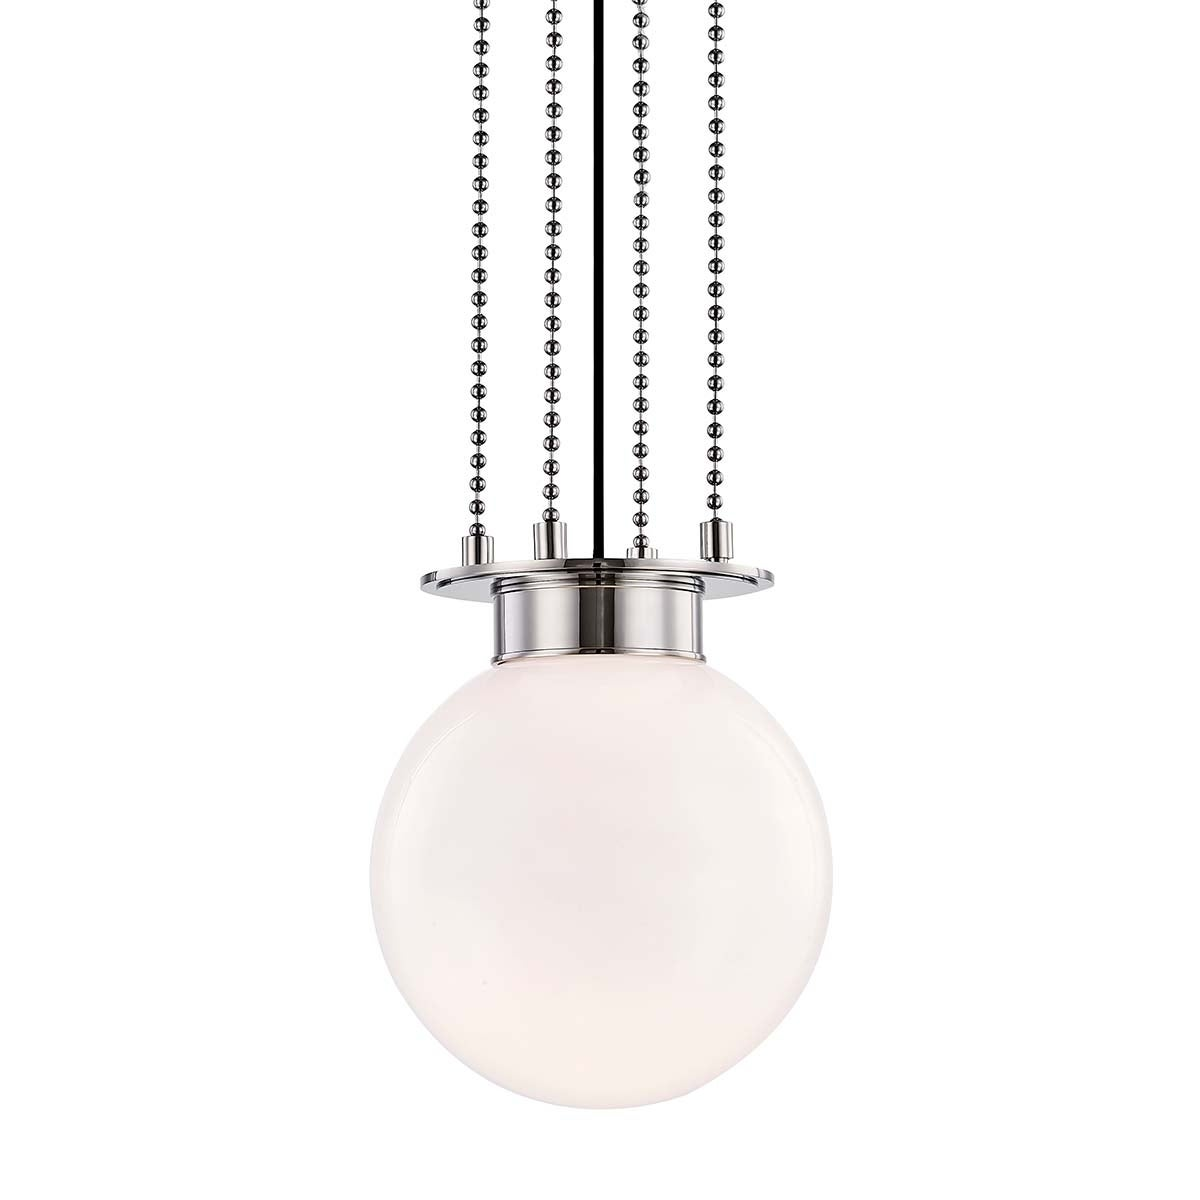 Hudson Valley Gunther 1-light Polished Nickel Small Pendant, White Glass